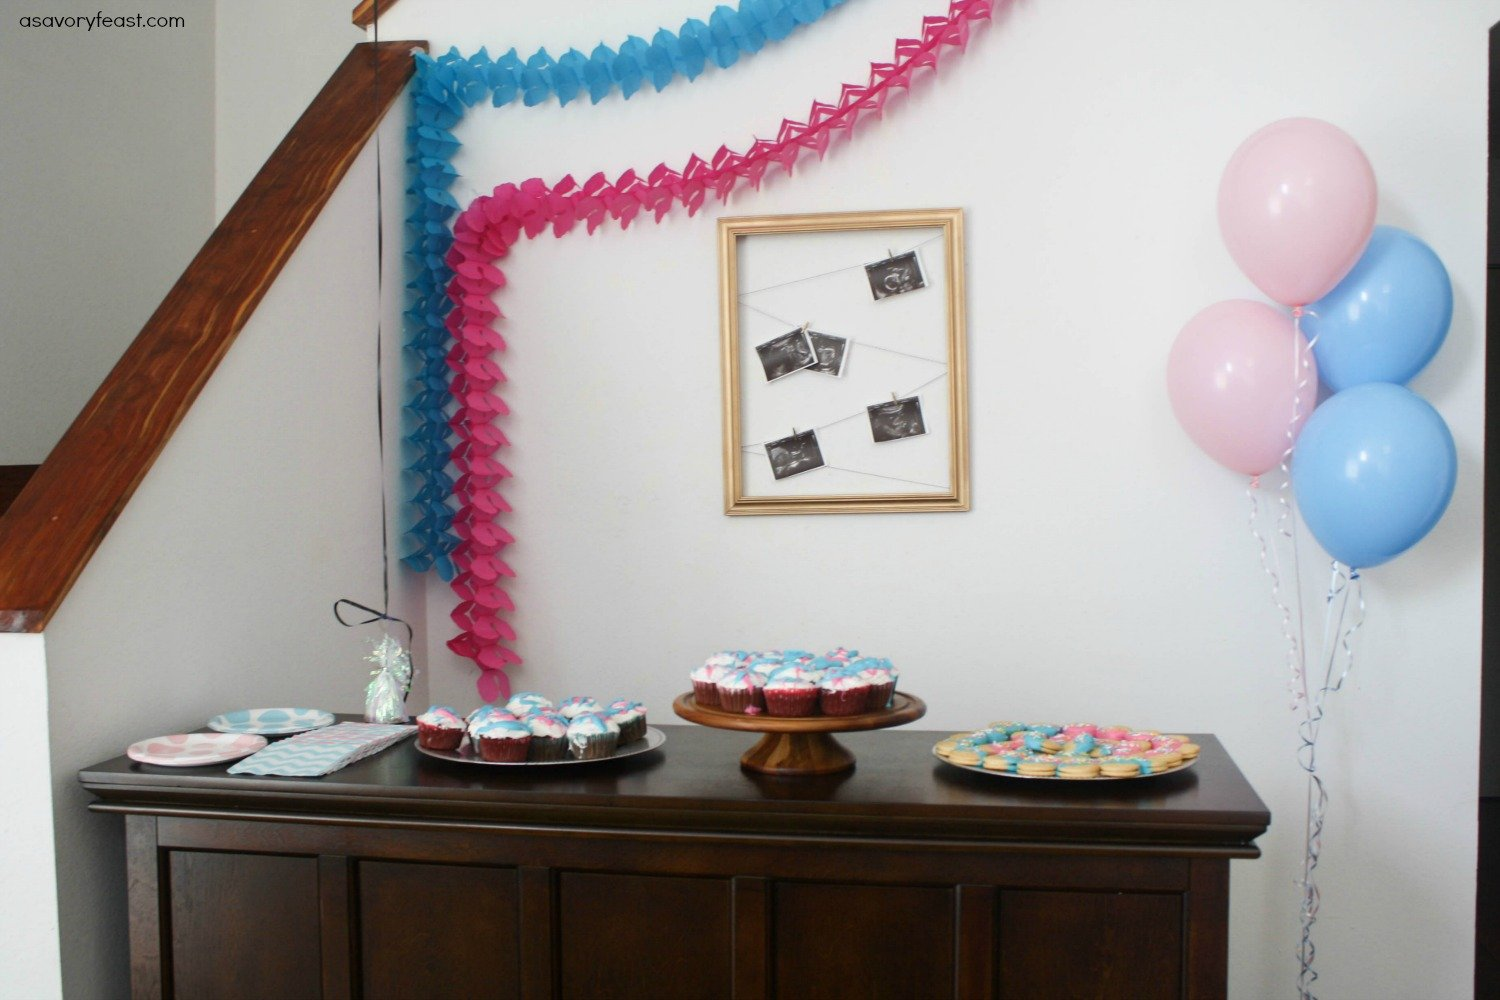 Planning a gender reveal party? Here are some simple yet super cute ideas for food, decor and how to do the big reveal!